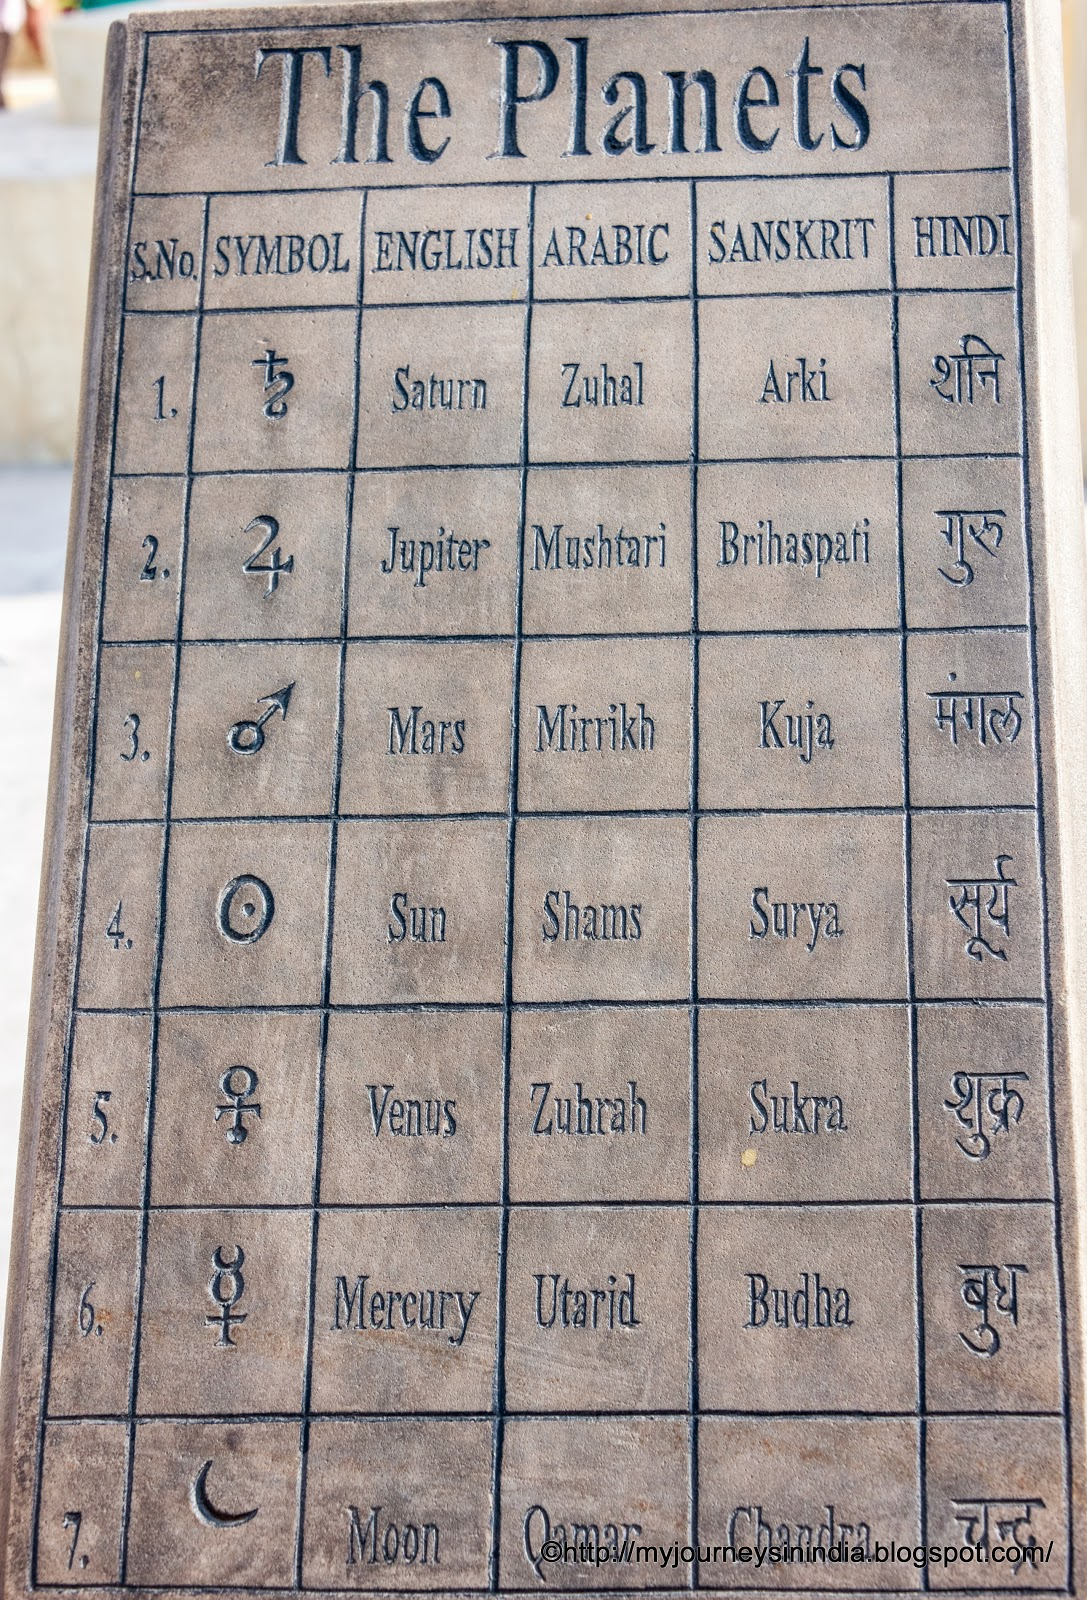 The Planets and English Arabic Sanskrit Hindi Names